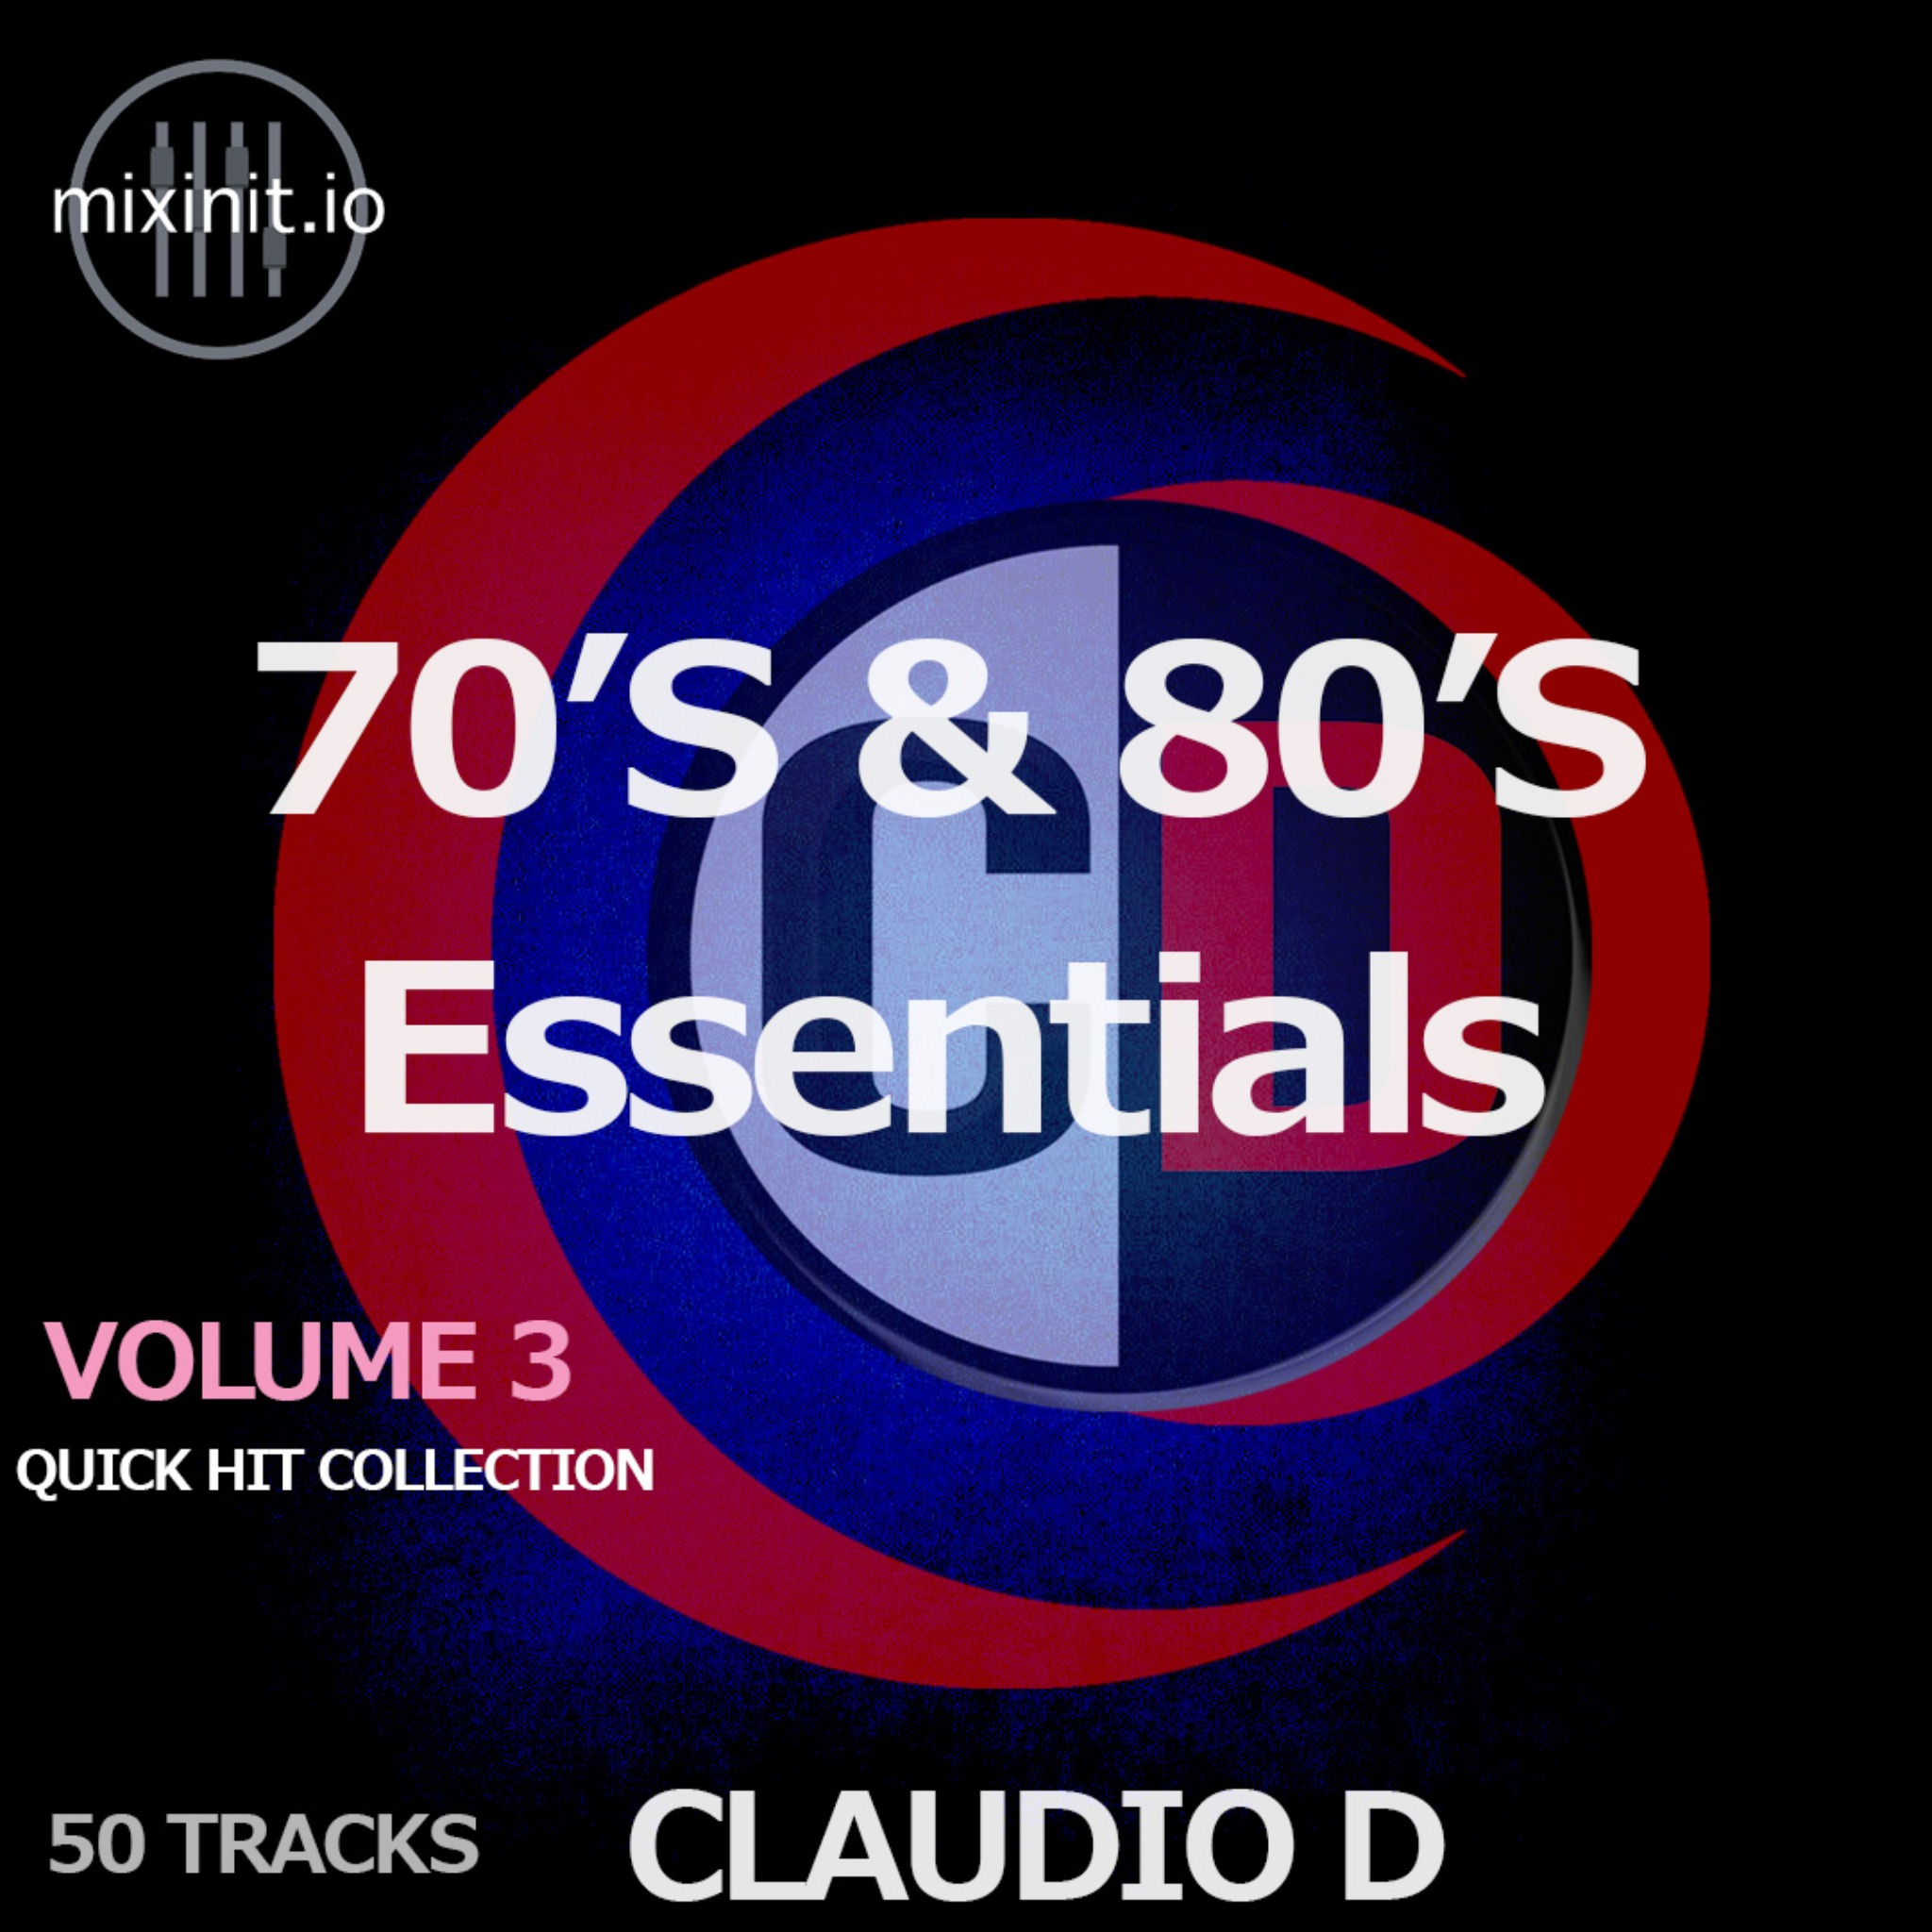 Claudio D - 70's & 80's Essentials Vol. 3 (Quick Hits 50 Pack)